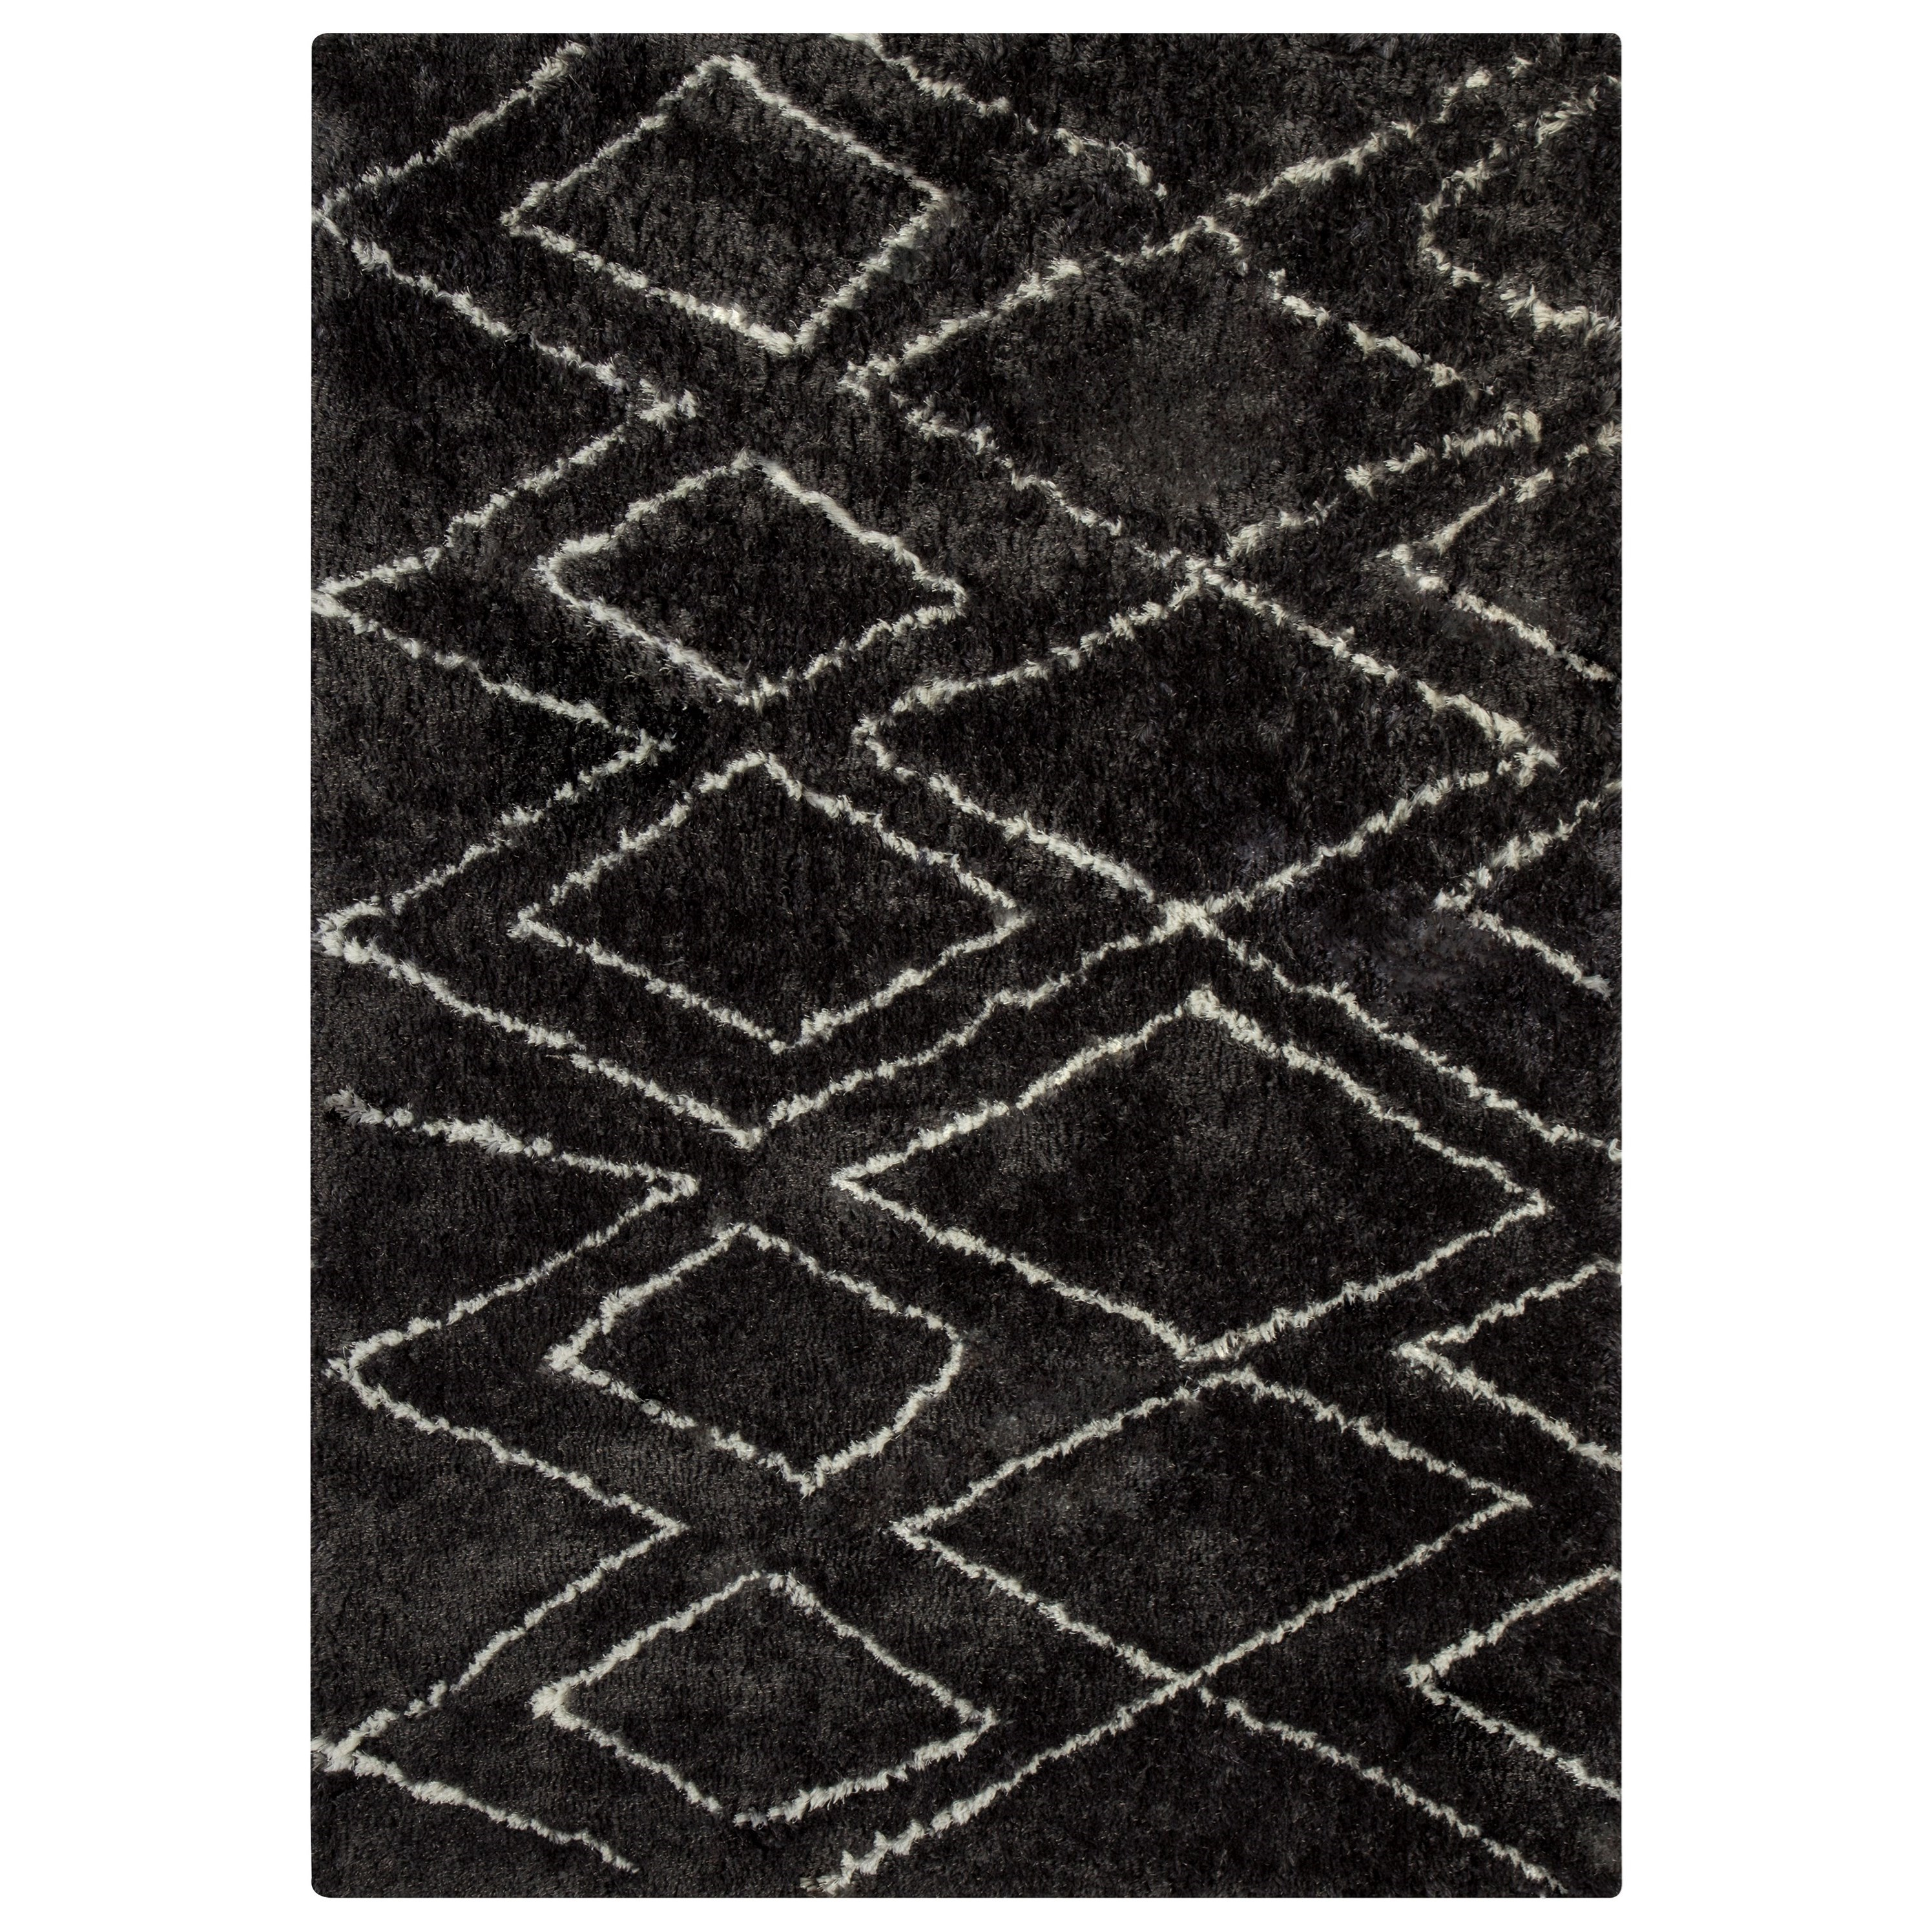 Signature Design by Ashley Contemporary Area Rugs Deryn Black/White Medium Rug - Item Number: R400242